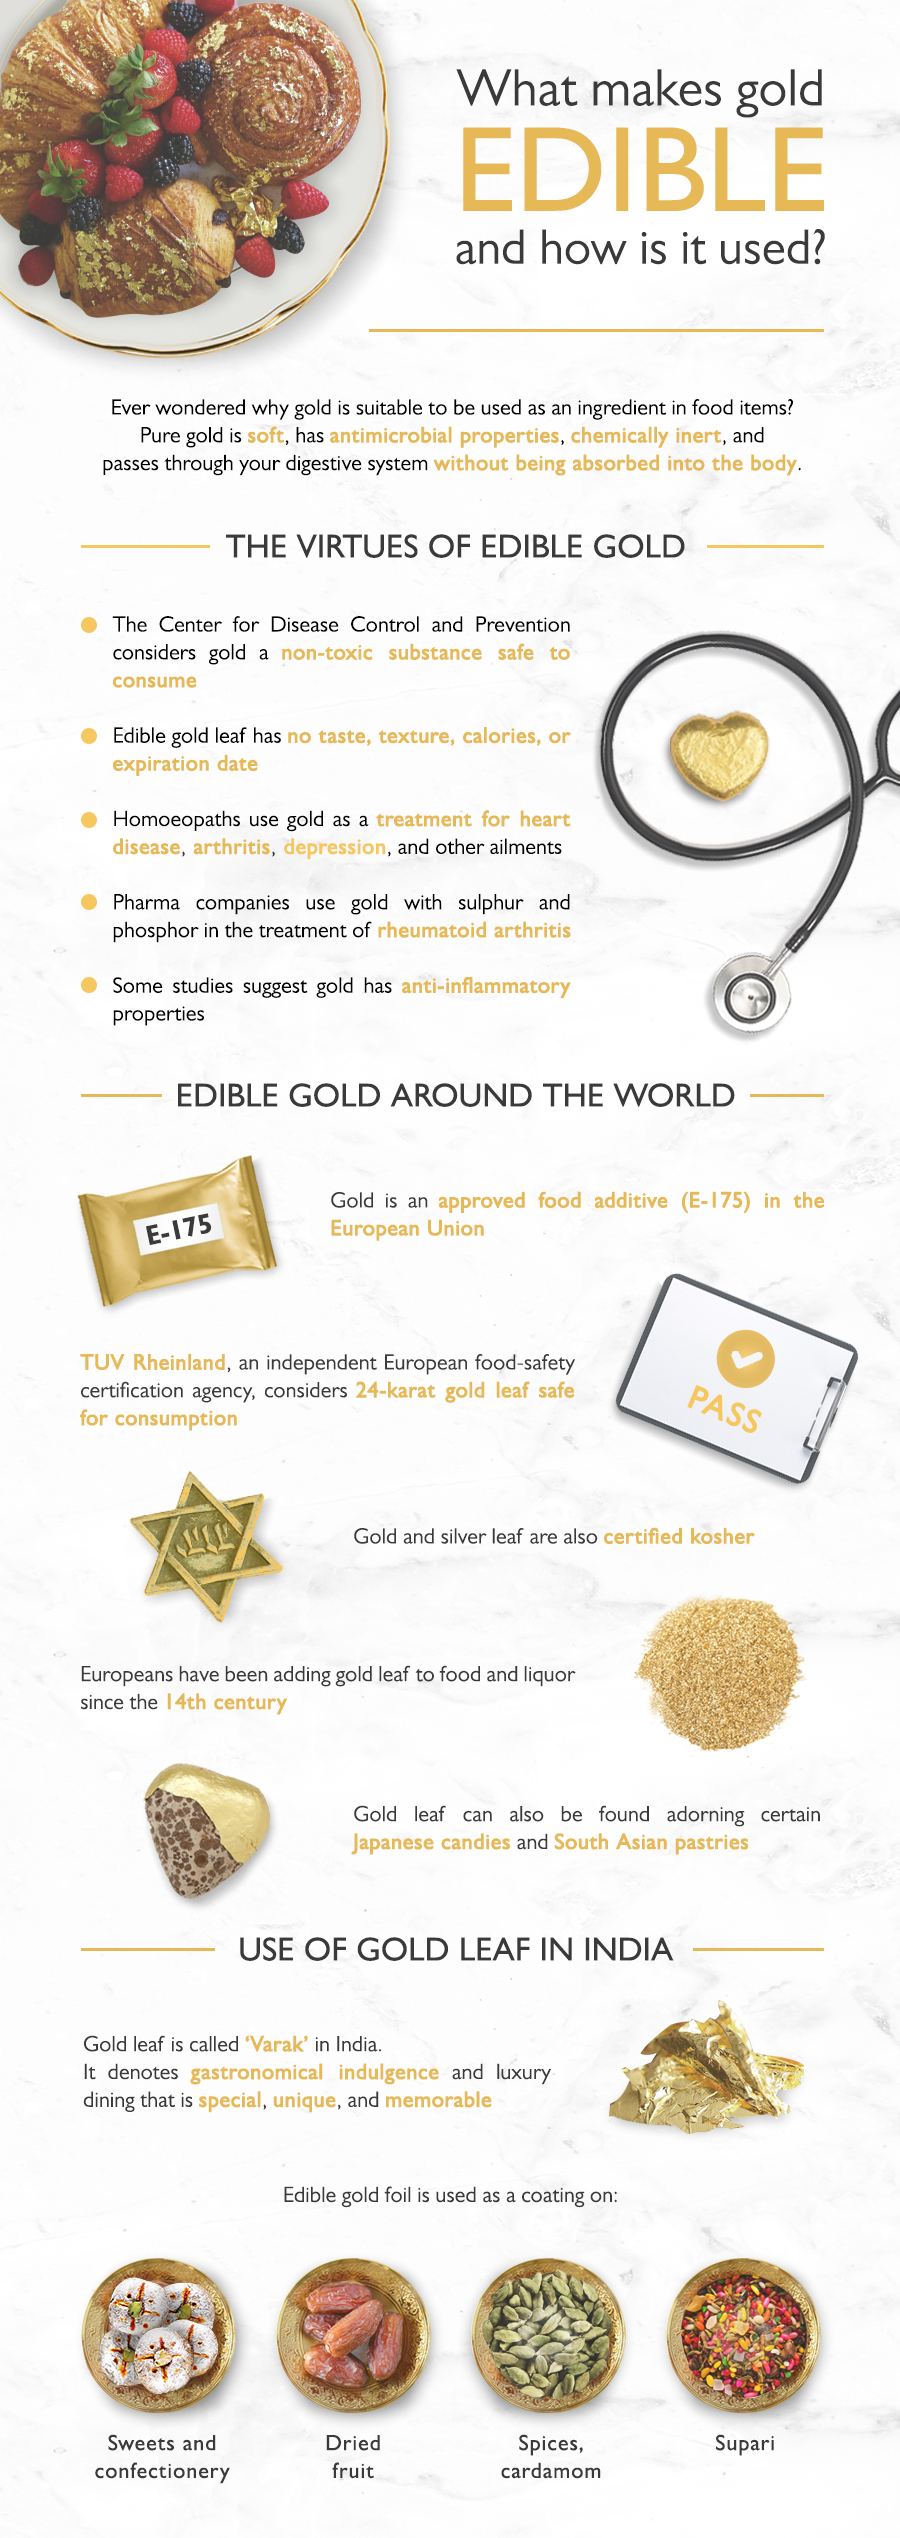 A close look at the health benefits of gold and why it's used in preparing many delicacies